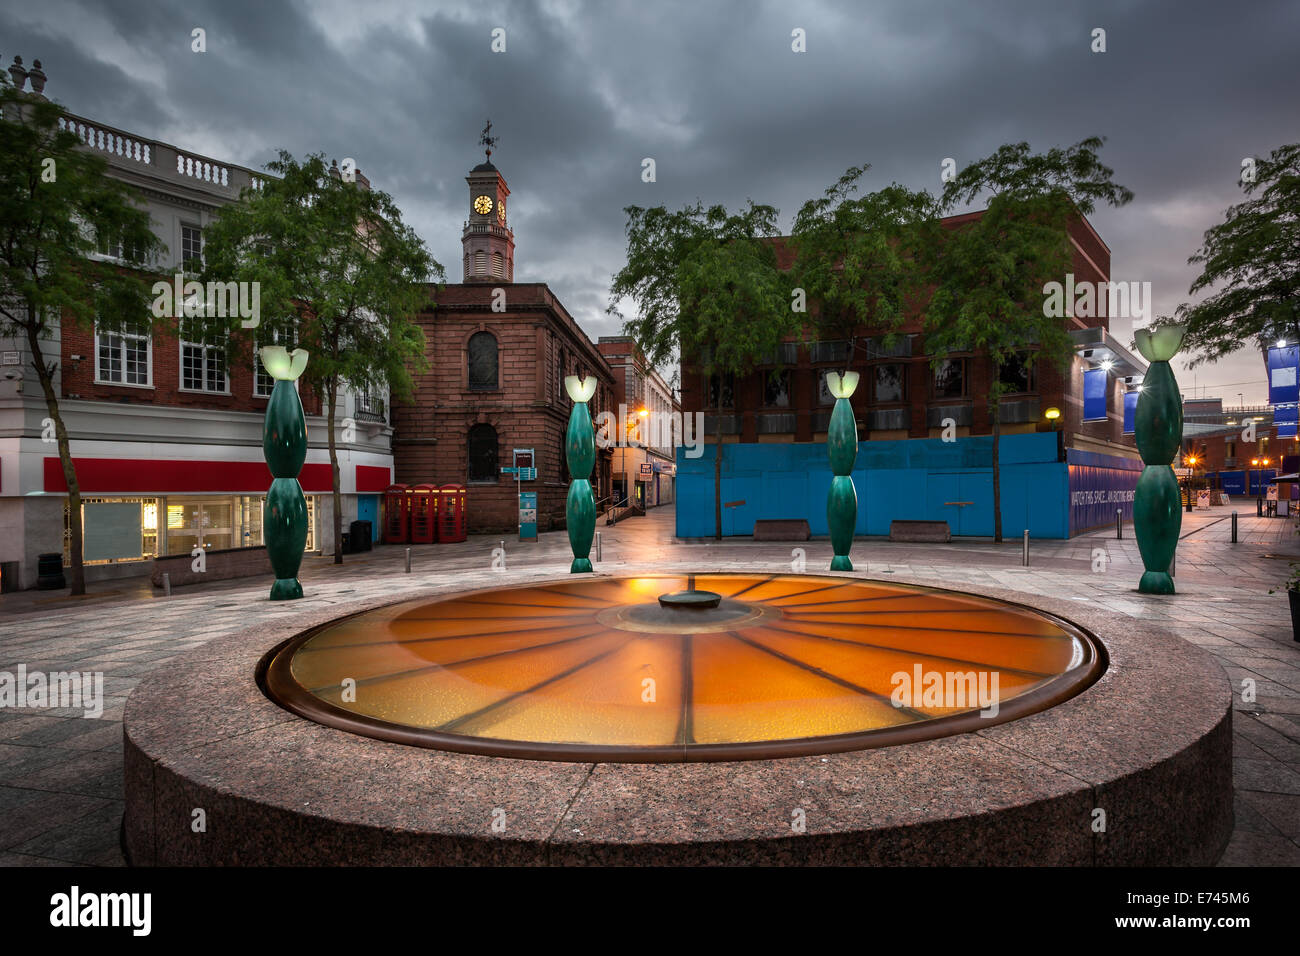 Golden square is one of the main attraction in Warrington Town centre, Cheshire England - Stock Image